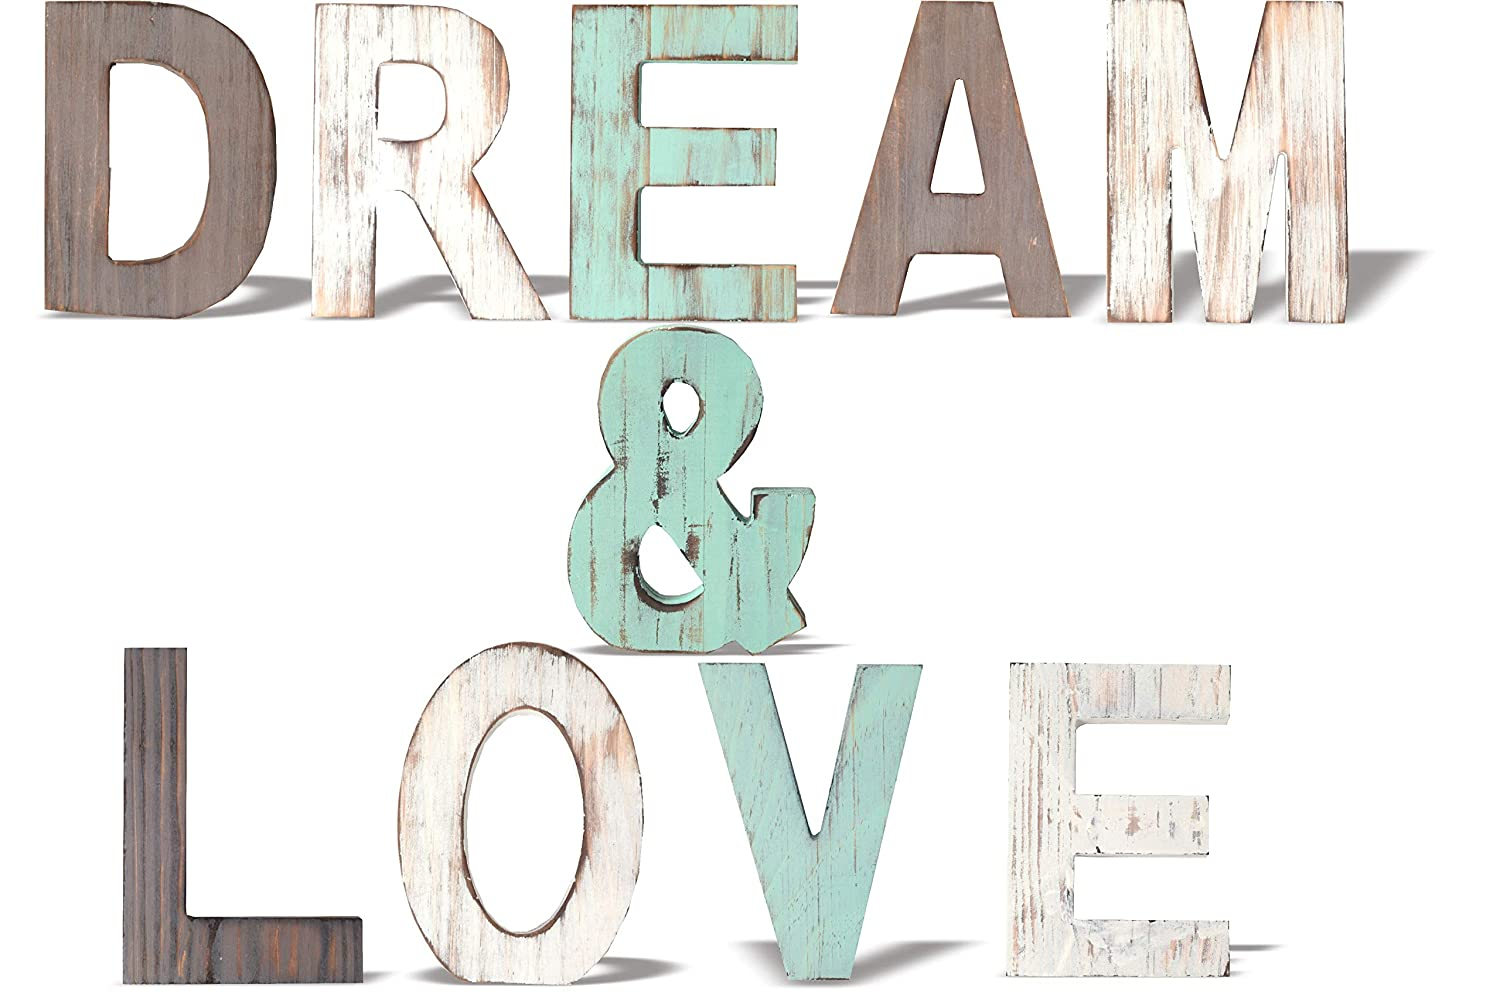 Rustic Wood Dream & Love Signs Home Décor | Freestanding Wooden Letters Cutouts for Home Décor| Multi-Color Wooden Signs |Decorative Word Signs| Multicolor Table Decor Centerpiece| for Kitchen Shelf,